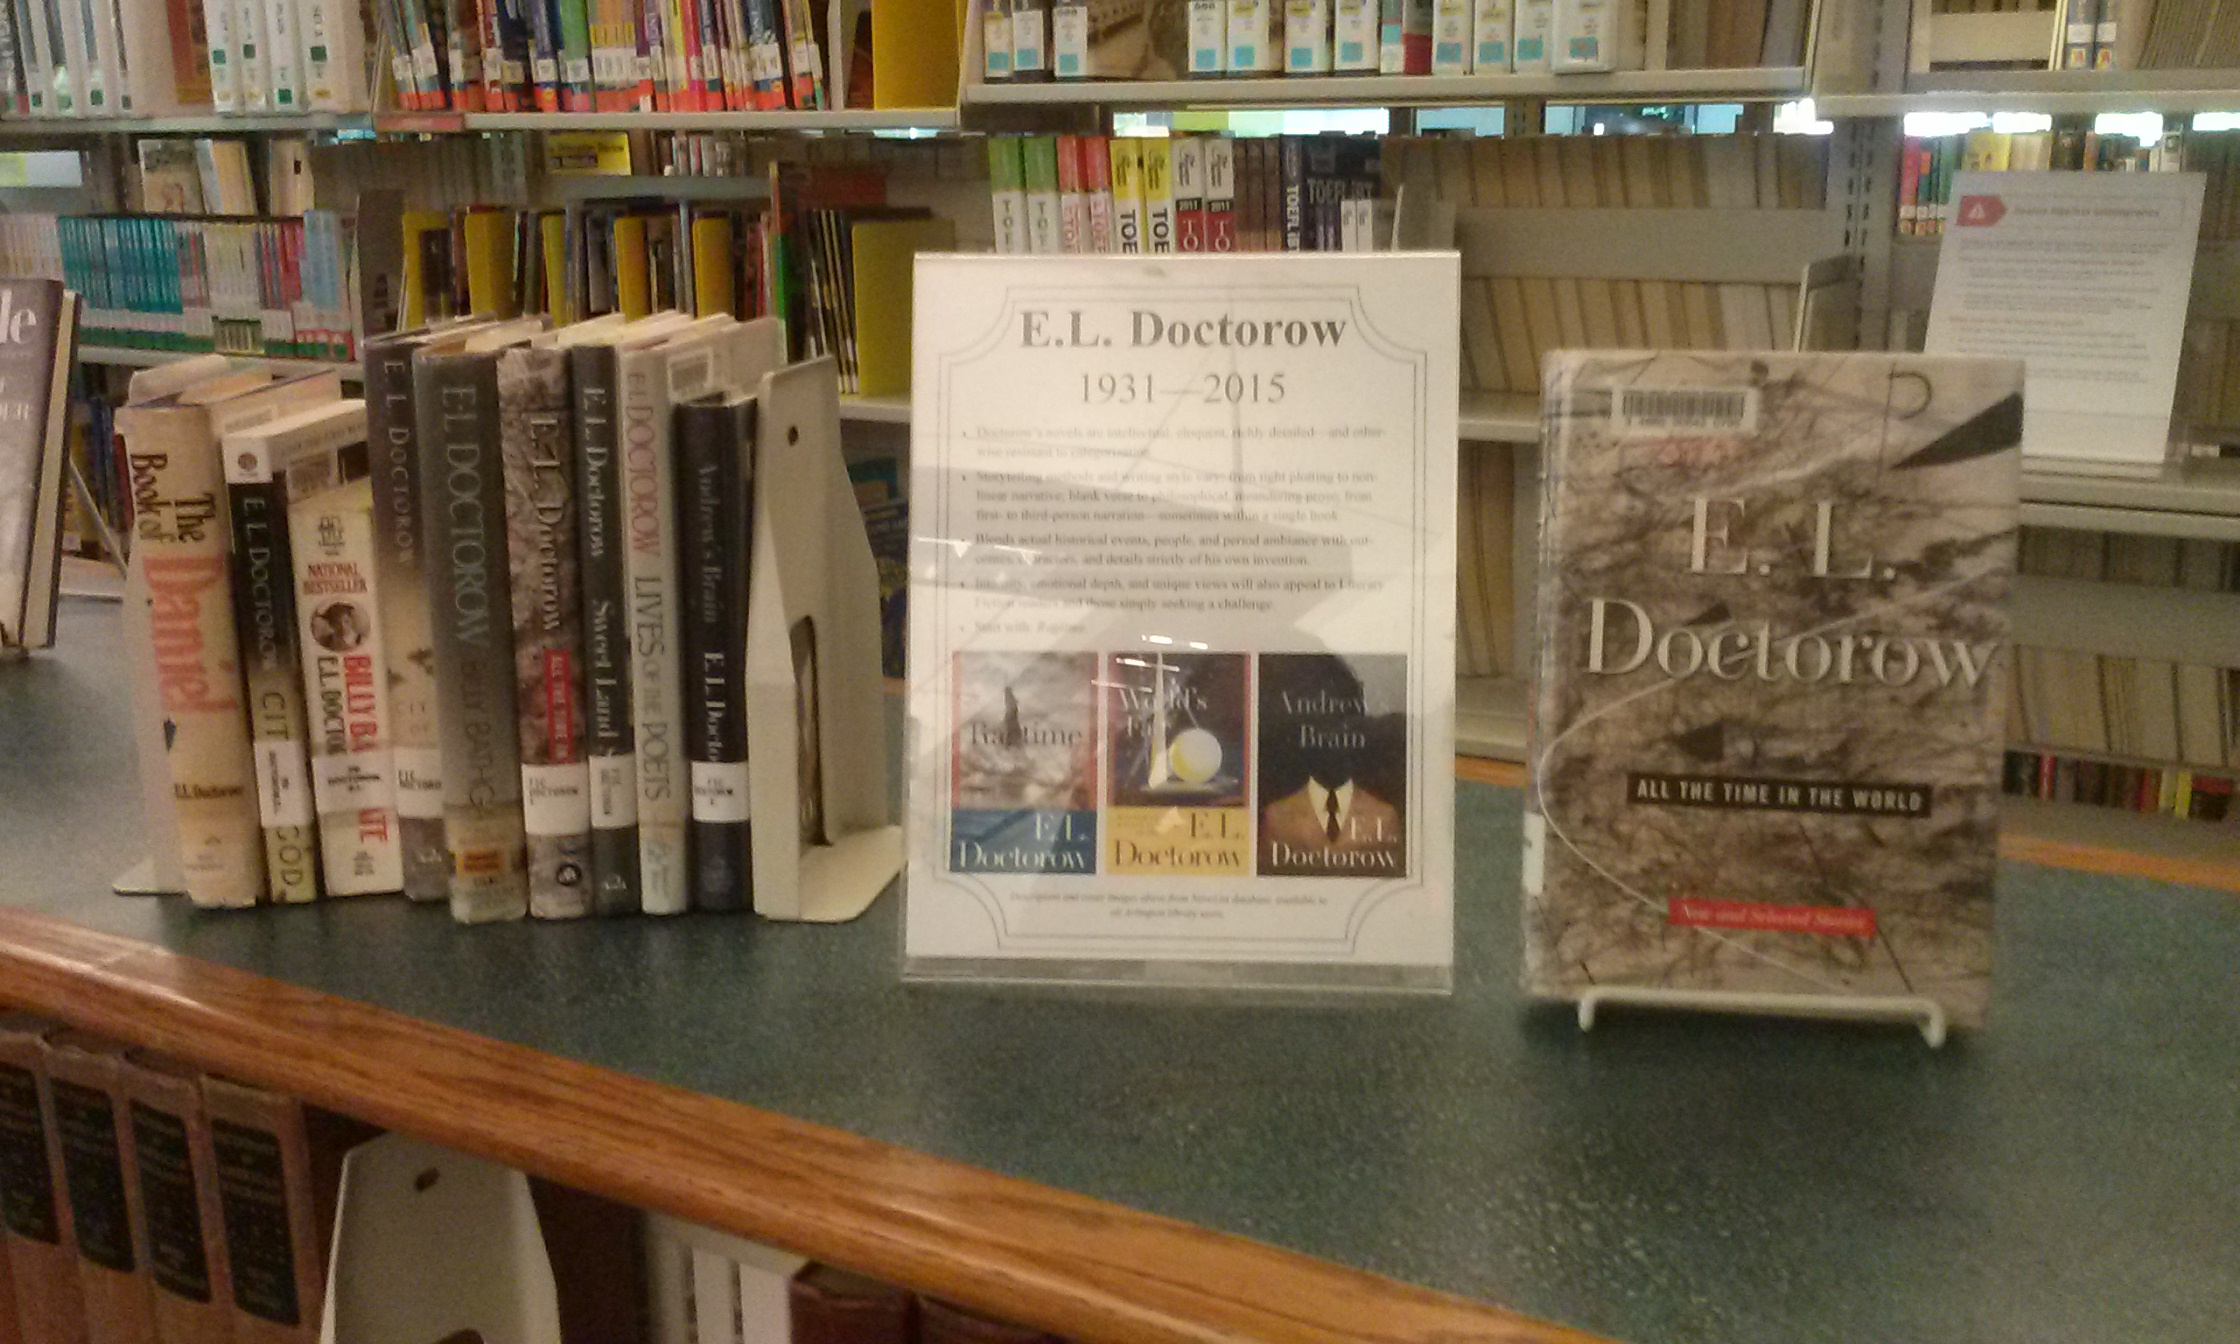 Sign For El Doctorow And A Display Of His Books On A Counter Top In The